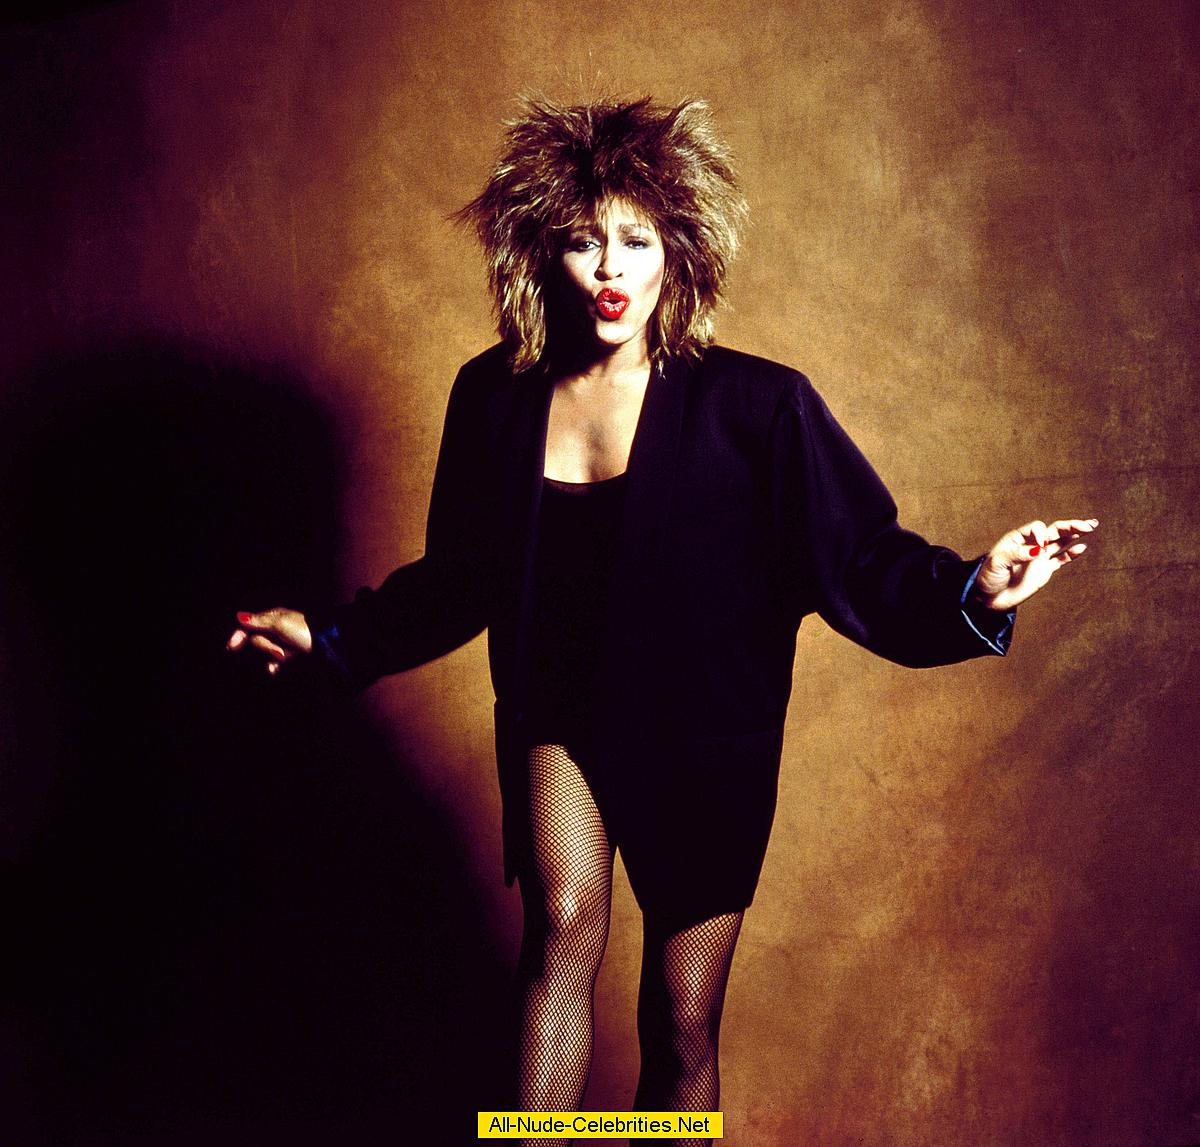 Rather video com tina turner nude much regret